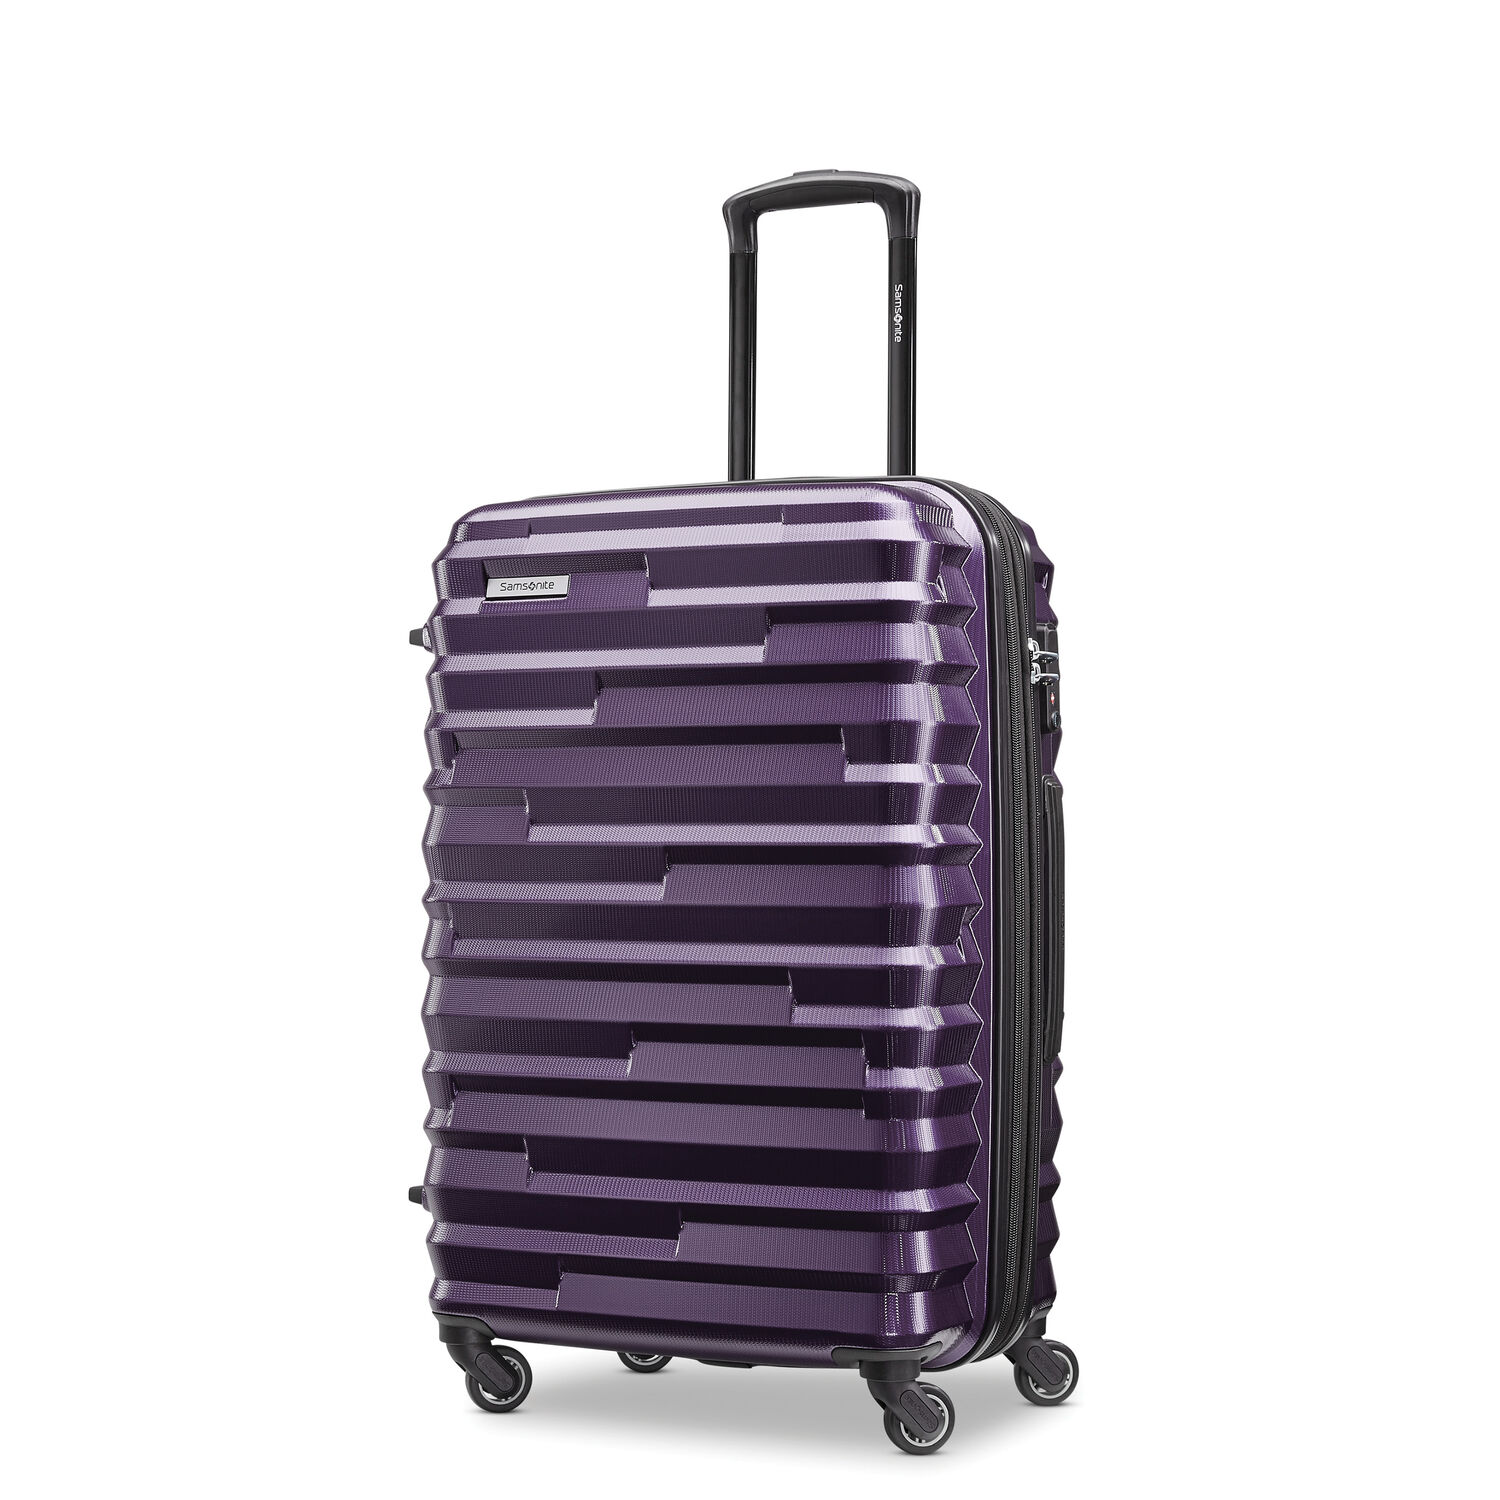 Samsonite Ziplite 4 Spinner Medium in the color Purple.